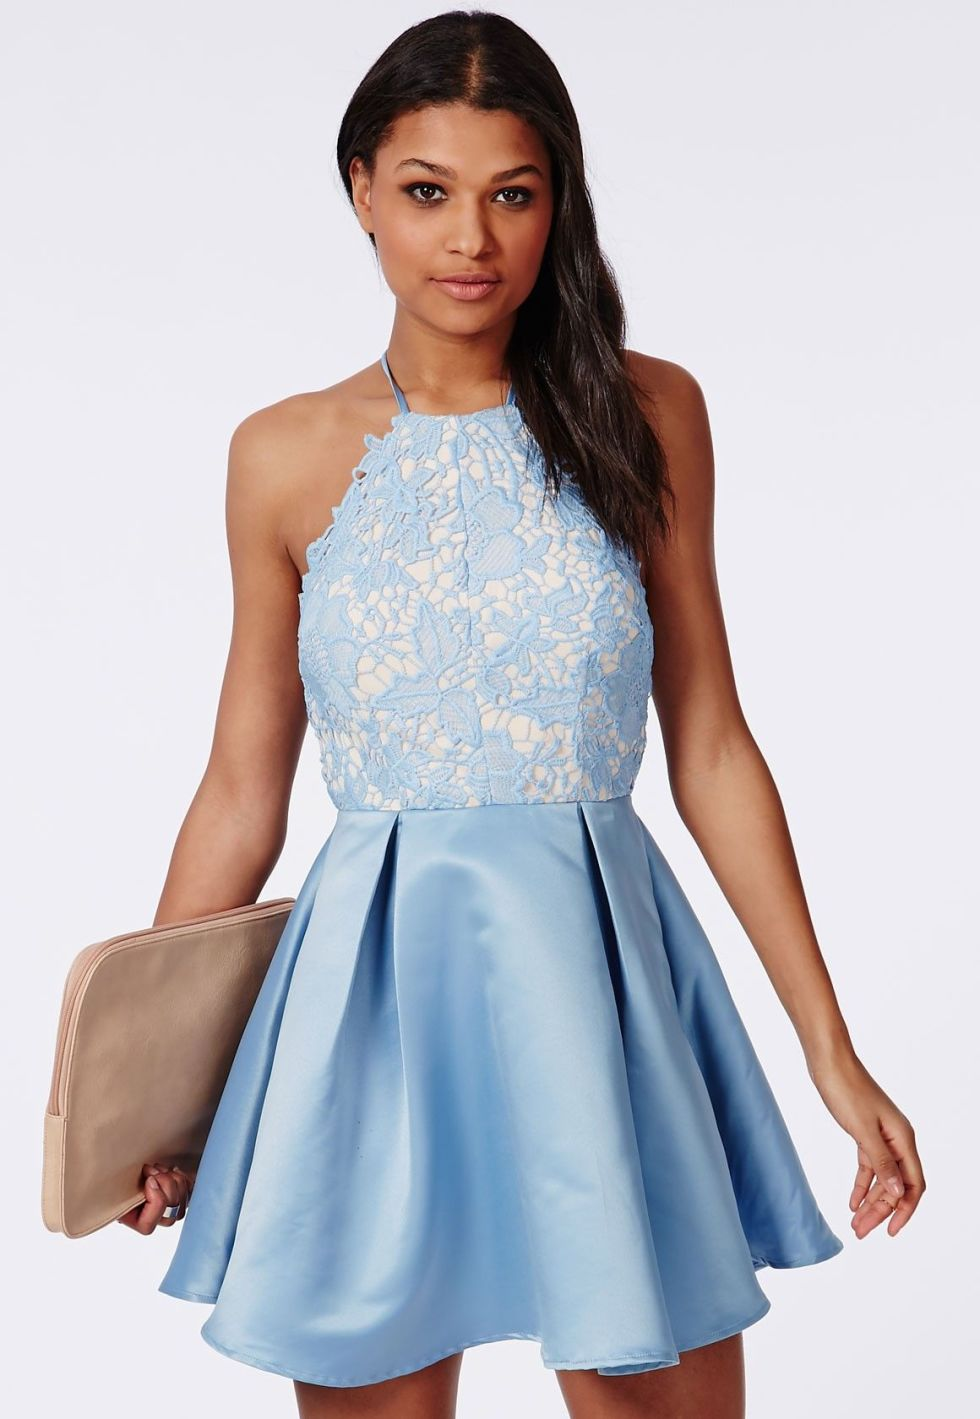 best value prom dresses_Prom Dresses_dressesss